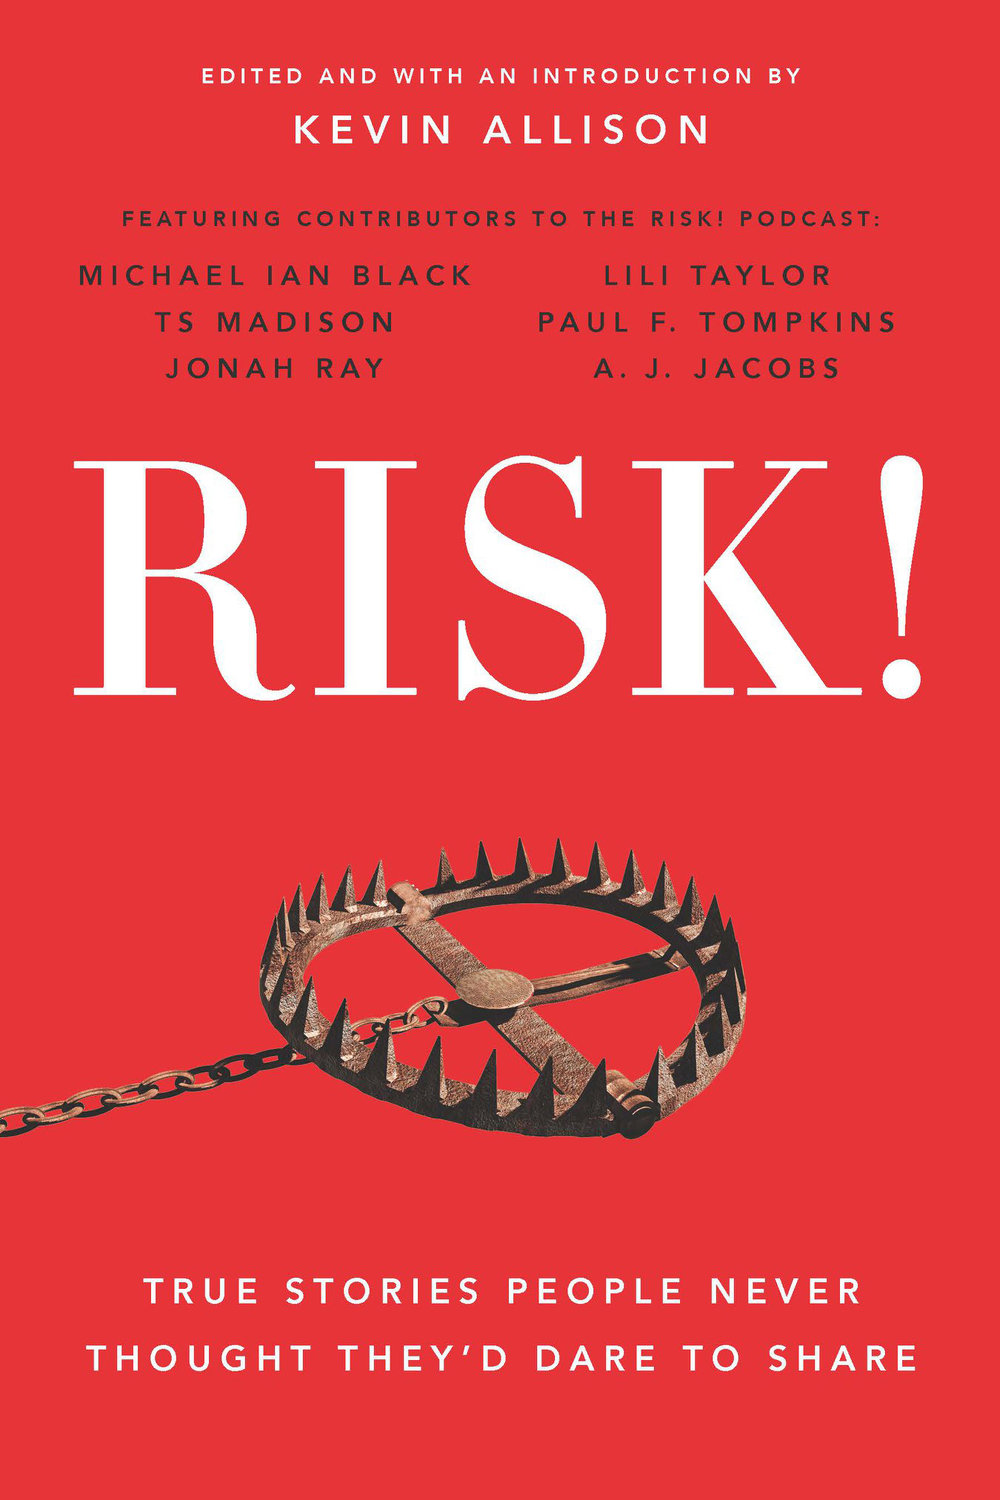 RISK-Bookcover_02-08-18.jpg